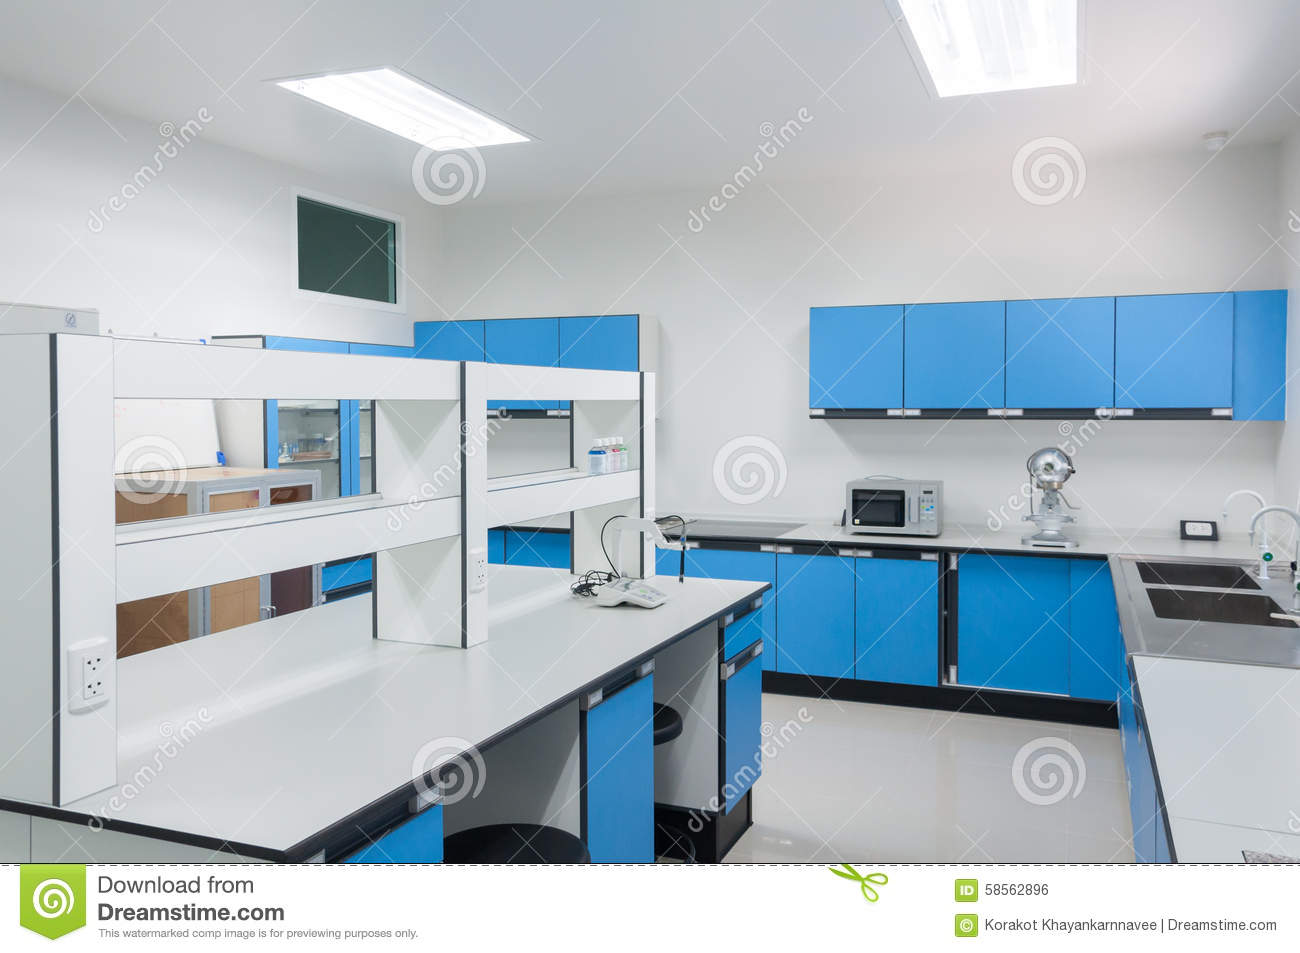 science modern lab interior architecture stock photo image science modern lab interior architecture royalty stock image